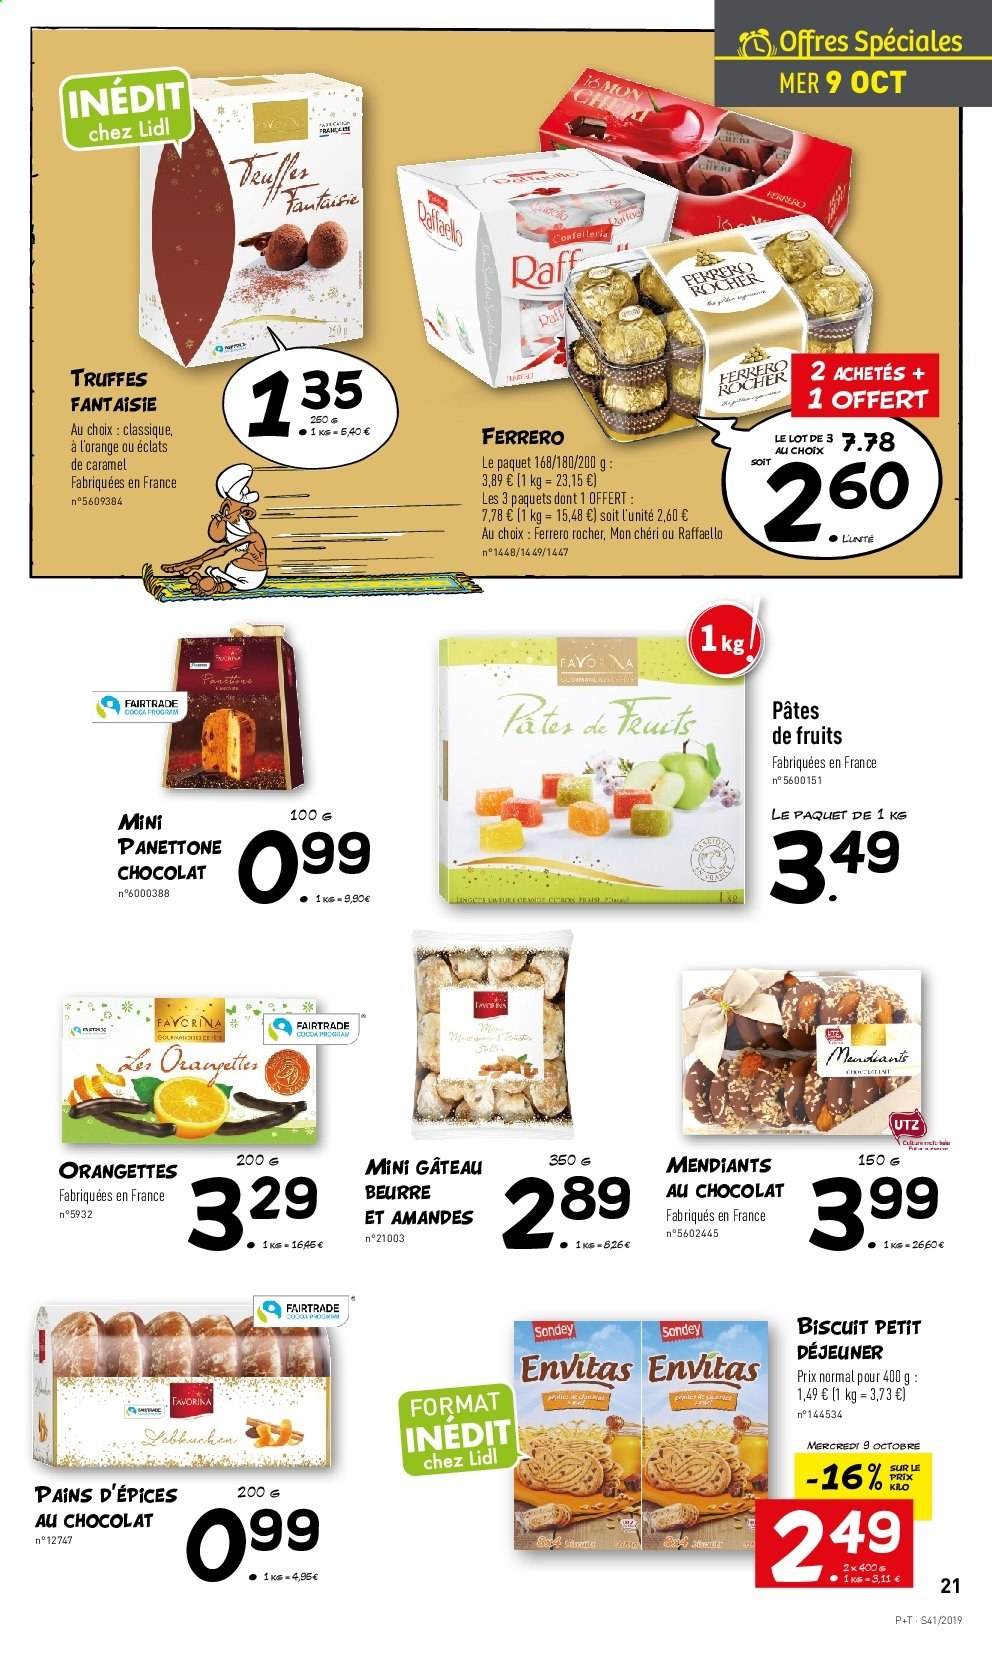 Catalogue Lidl - 09.10.2019 - 15.10.2019. Page 21.